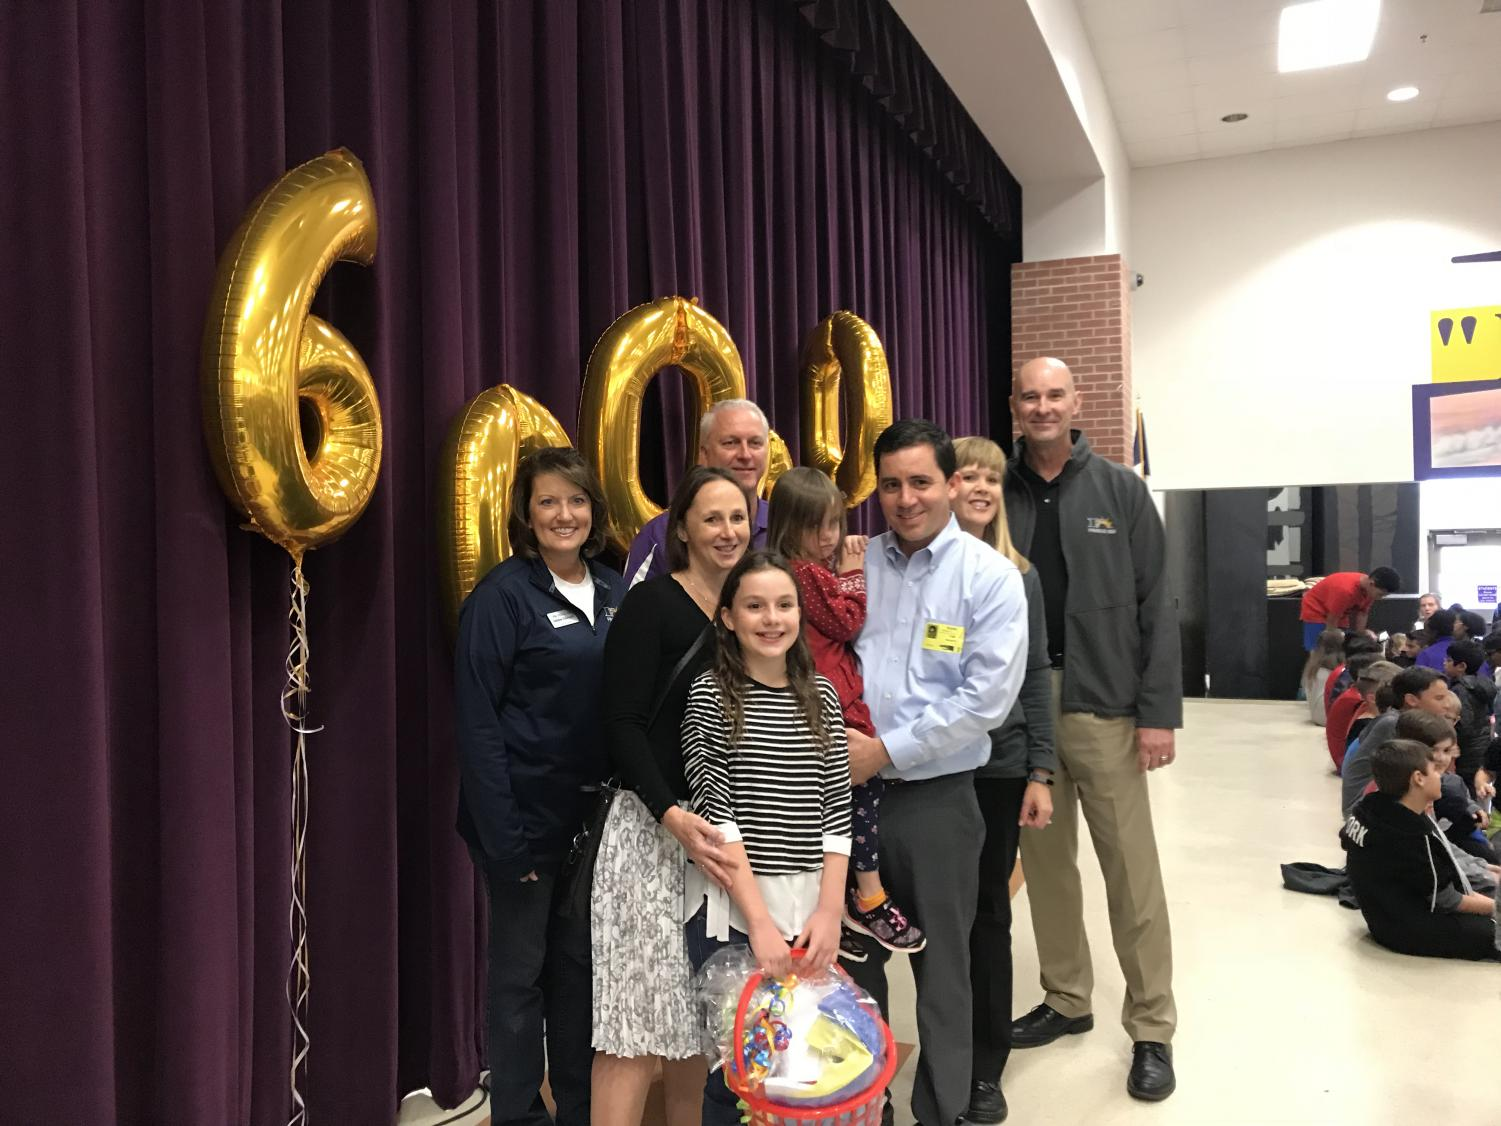 Alanna+Mazeffa+smiles+for+a+picture+alongside+her+parents+and+Superintendent+Dr.+Waldrip+after+receiving+a+gift+basket+during+Tuesday%27s+celebration.